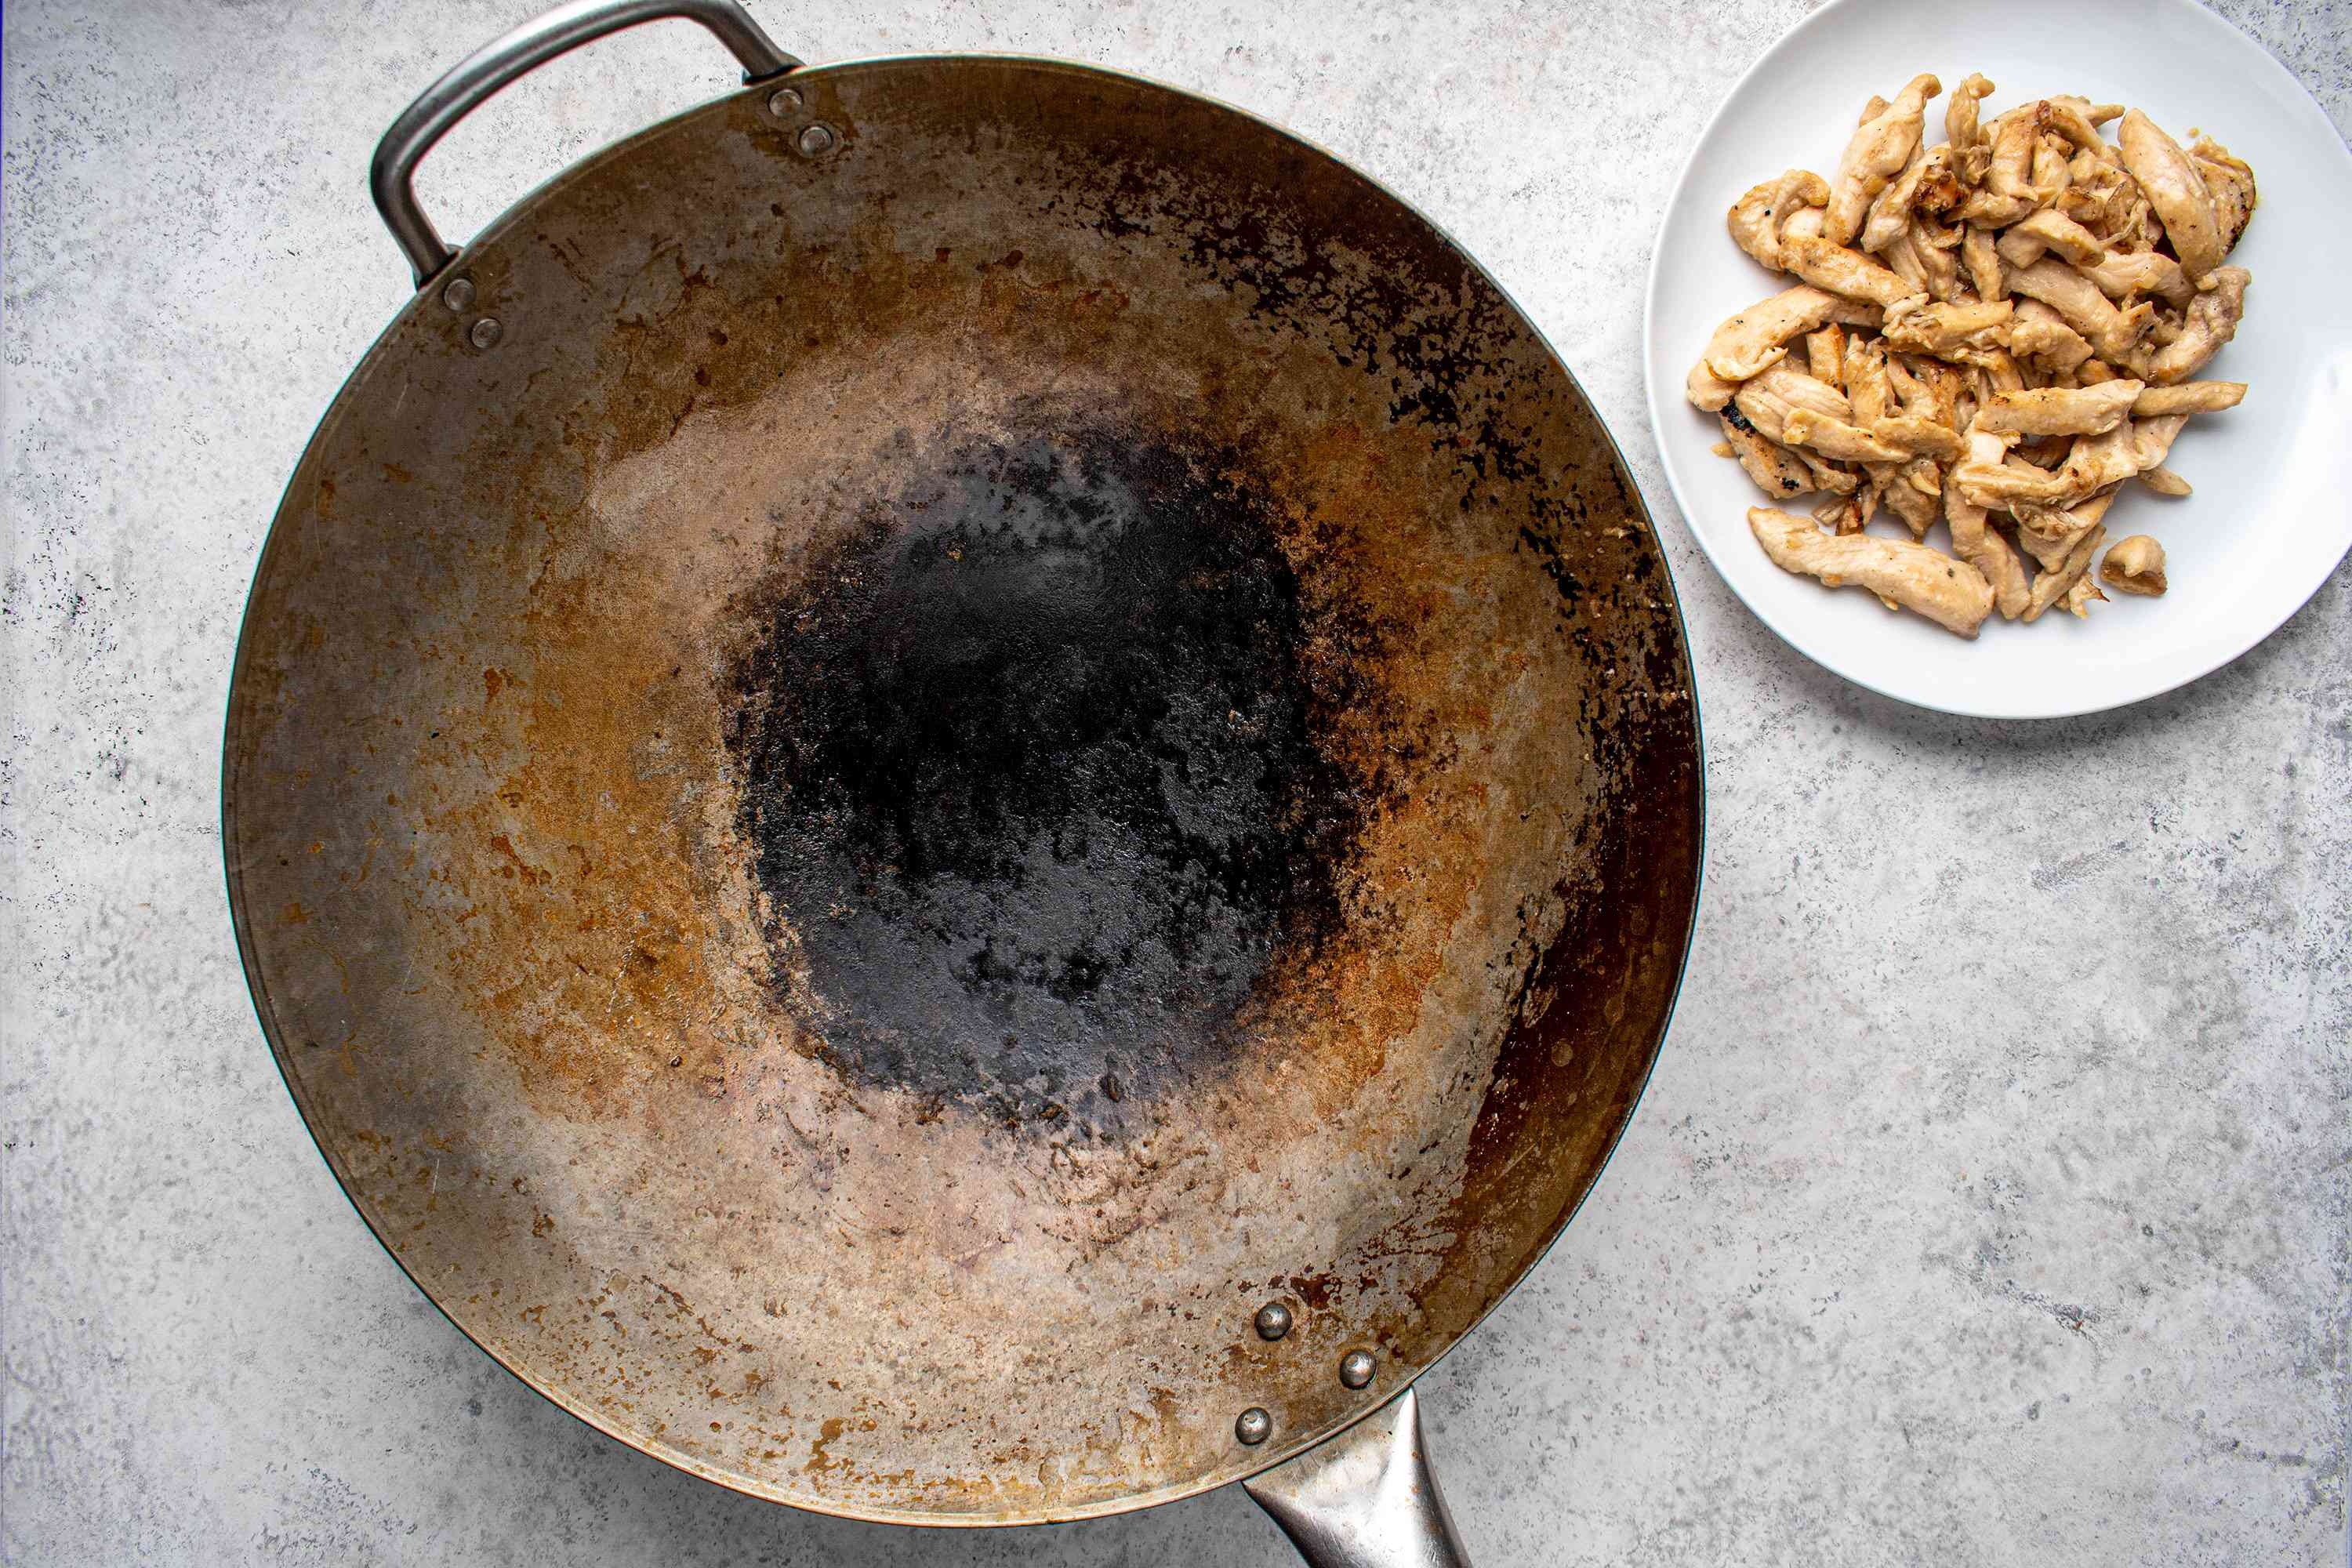 chicken removed from wok